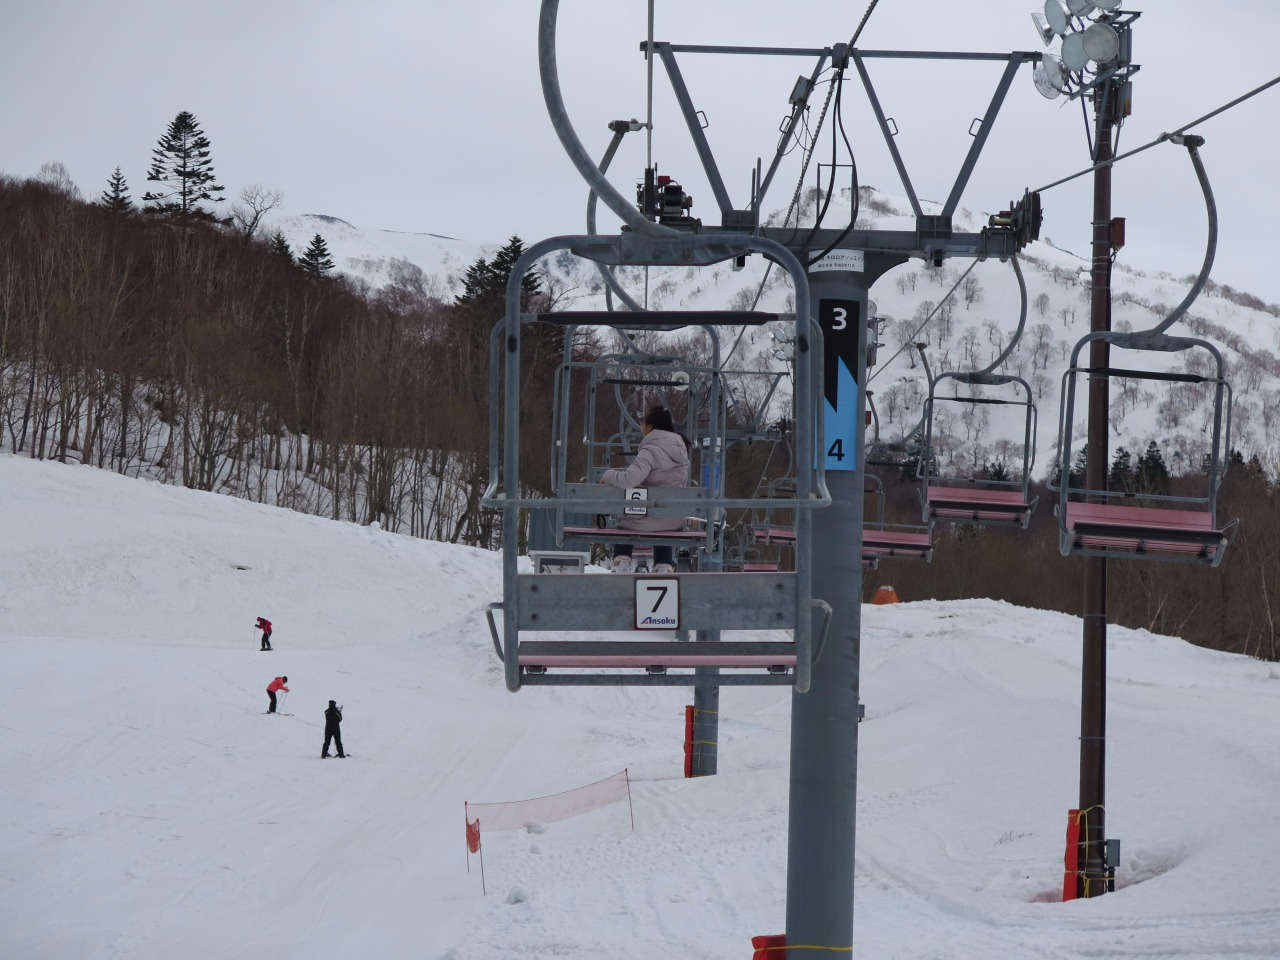 Kiroro ski resort